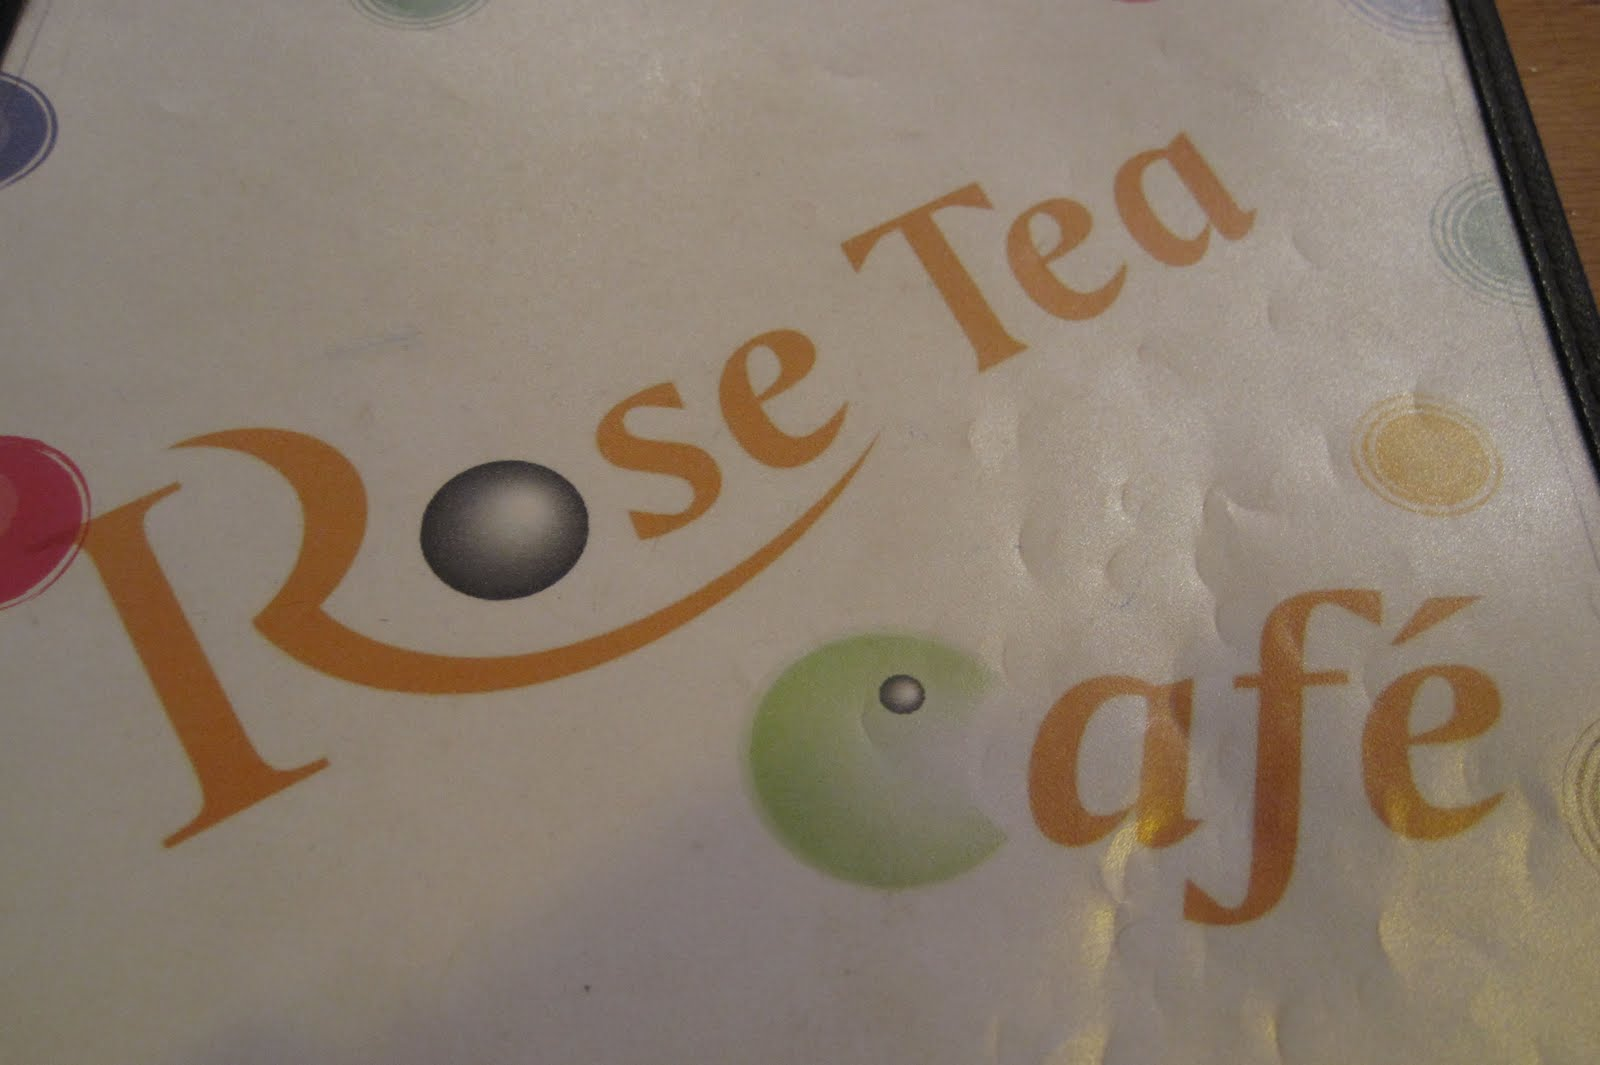 yum yum rose tea cafe